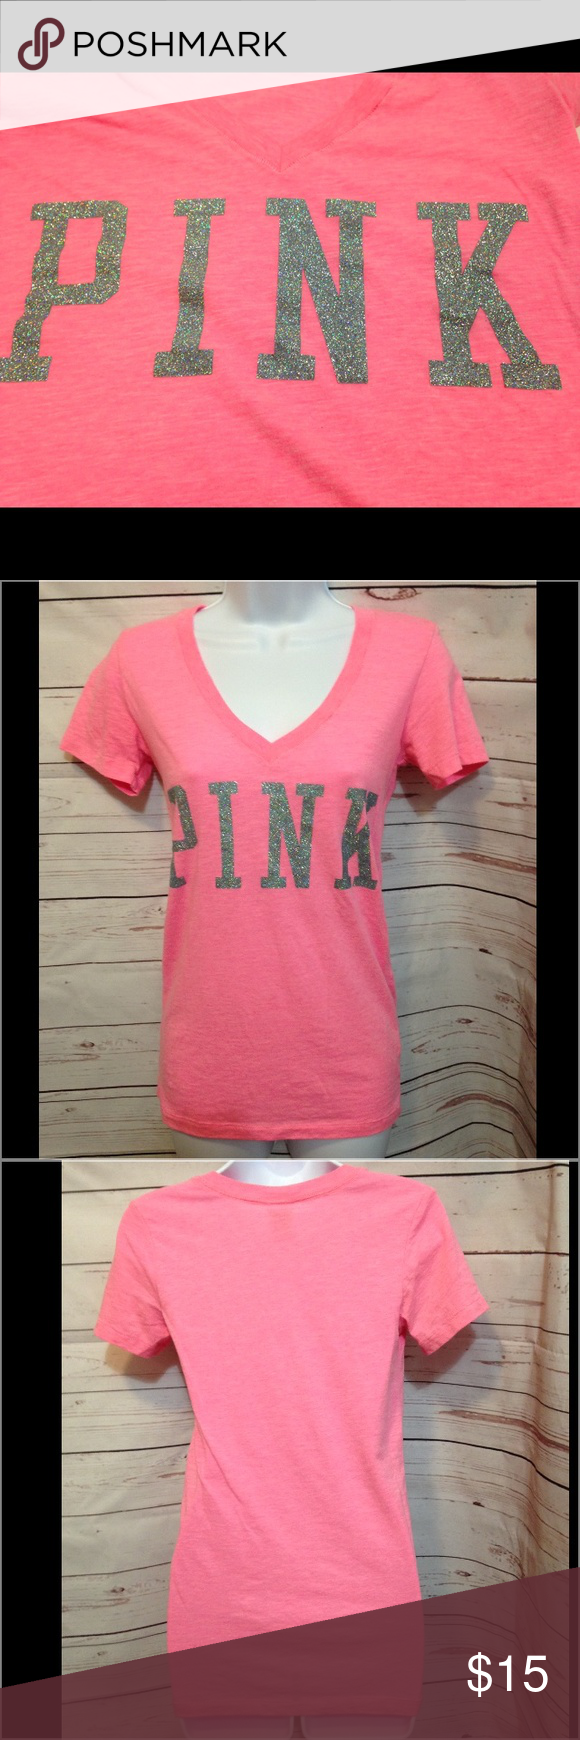 """PINK Victorias Secret pink tee PINK Victorias Secret pink tee. Adorable pink V-neck with silver glitter PINK on front.  25"""" long, 15"""" across chest. Excellent condition! PINK Victoria's Secret Tops Tees - Short Sleeve"""